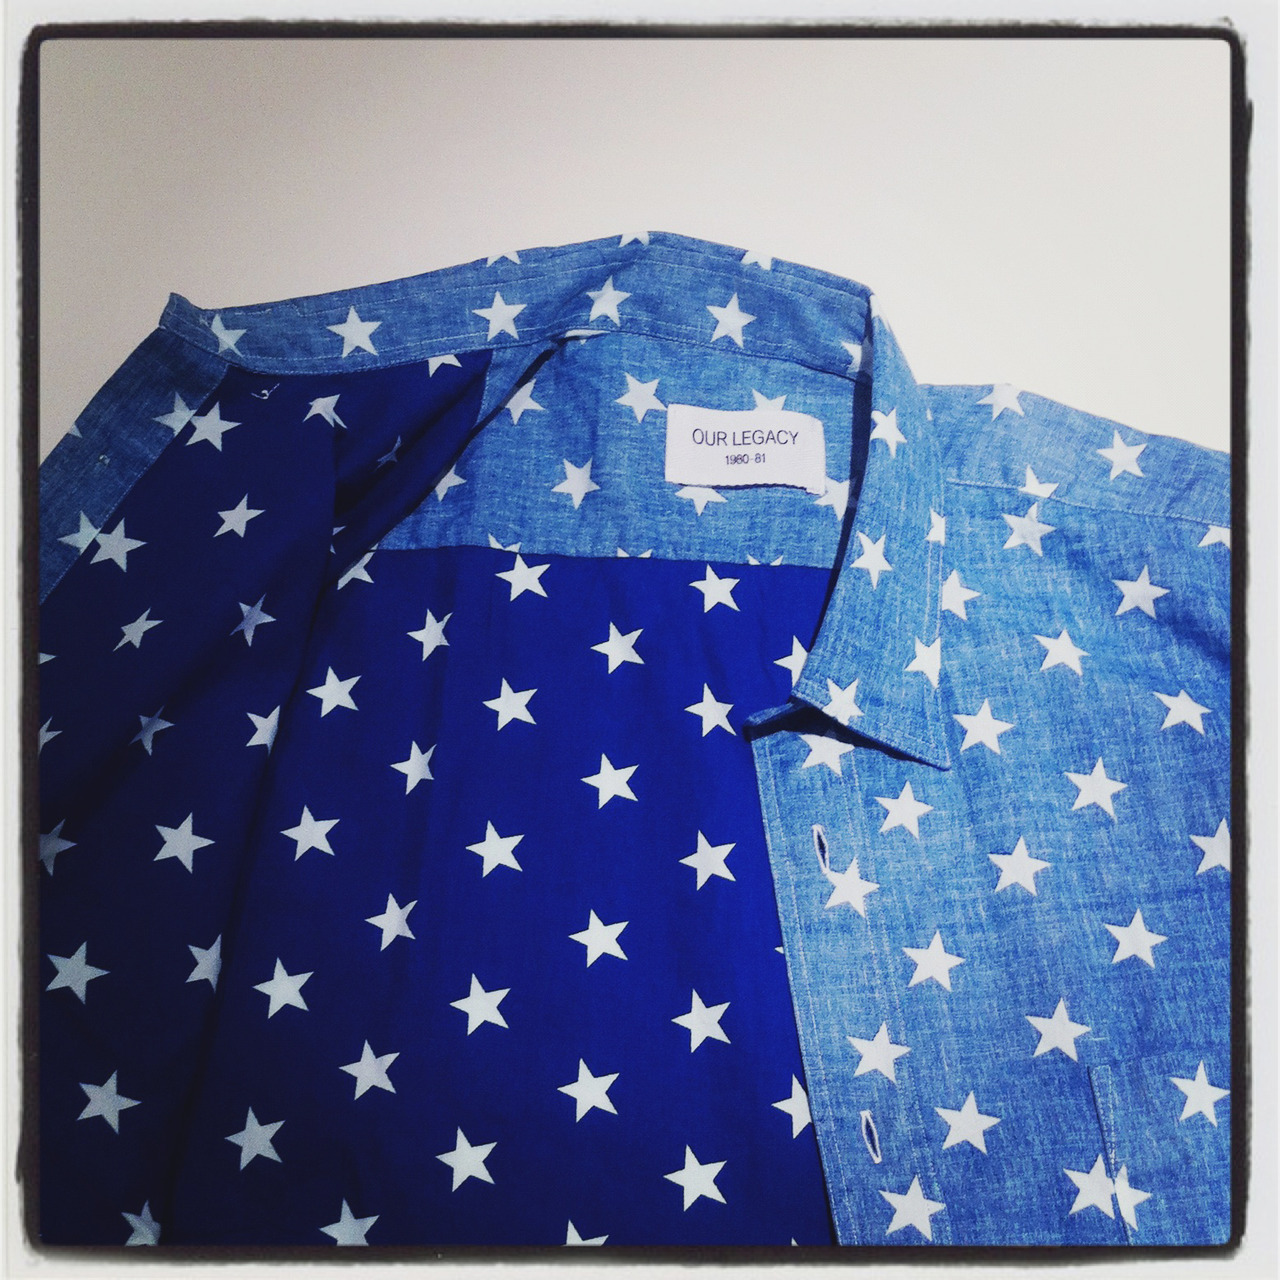 We can't get enough of Our Legacy's star-print shirt. BUY at: http://bit.ly/R93ueW or SHOP all patterned shirts at: http://bit.ly/SnBbrT